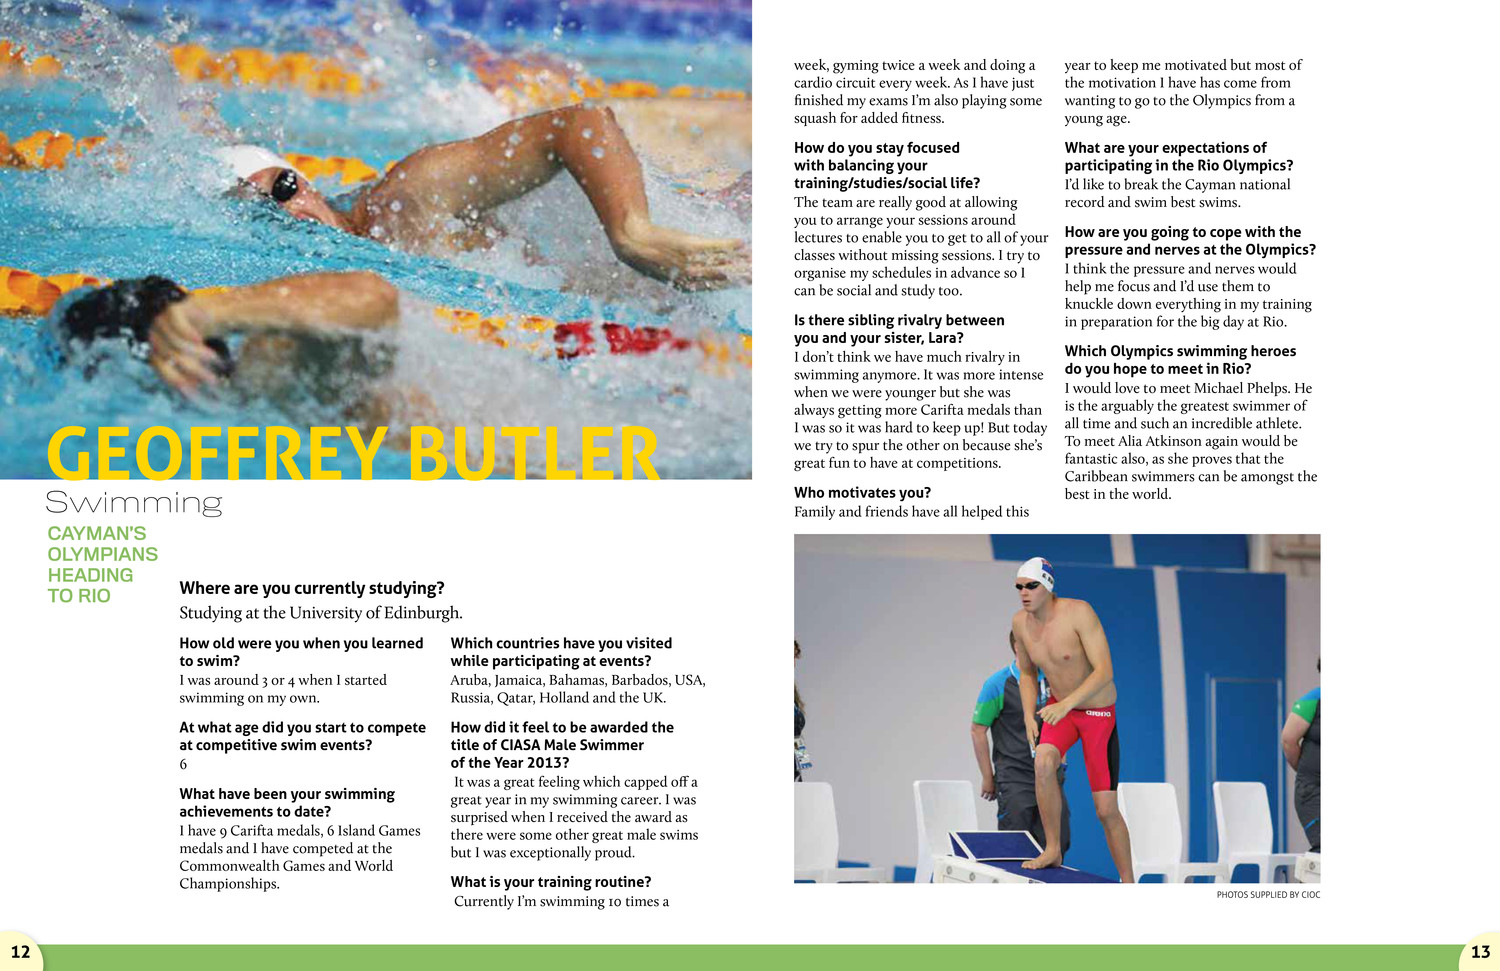 One spread of the magazine was devoted to each athlete, with a Q&A and several pictures of that athlete competing in their sport.